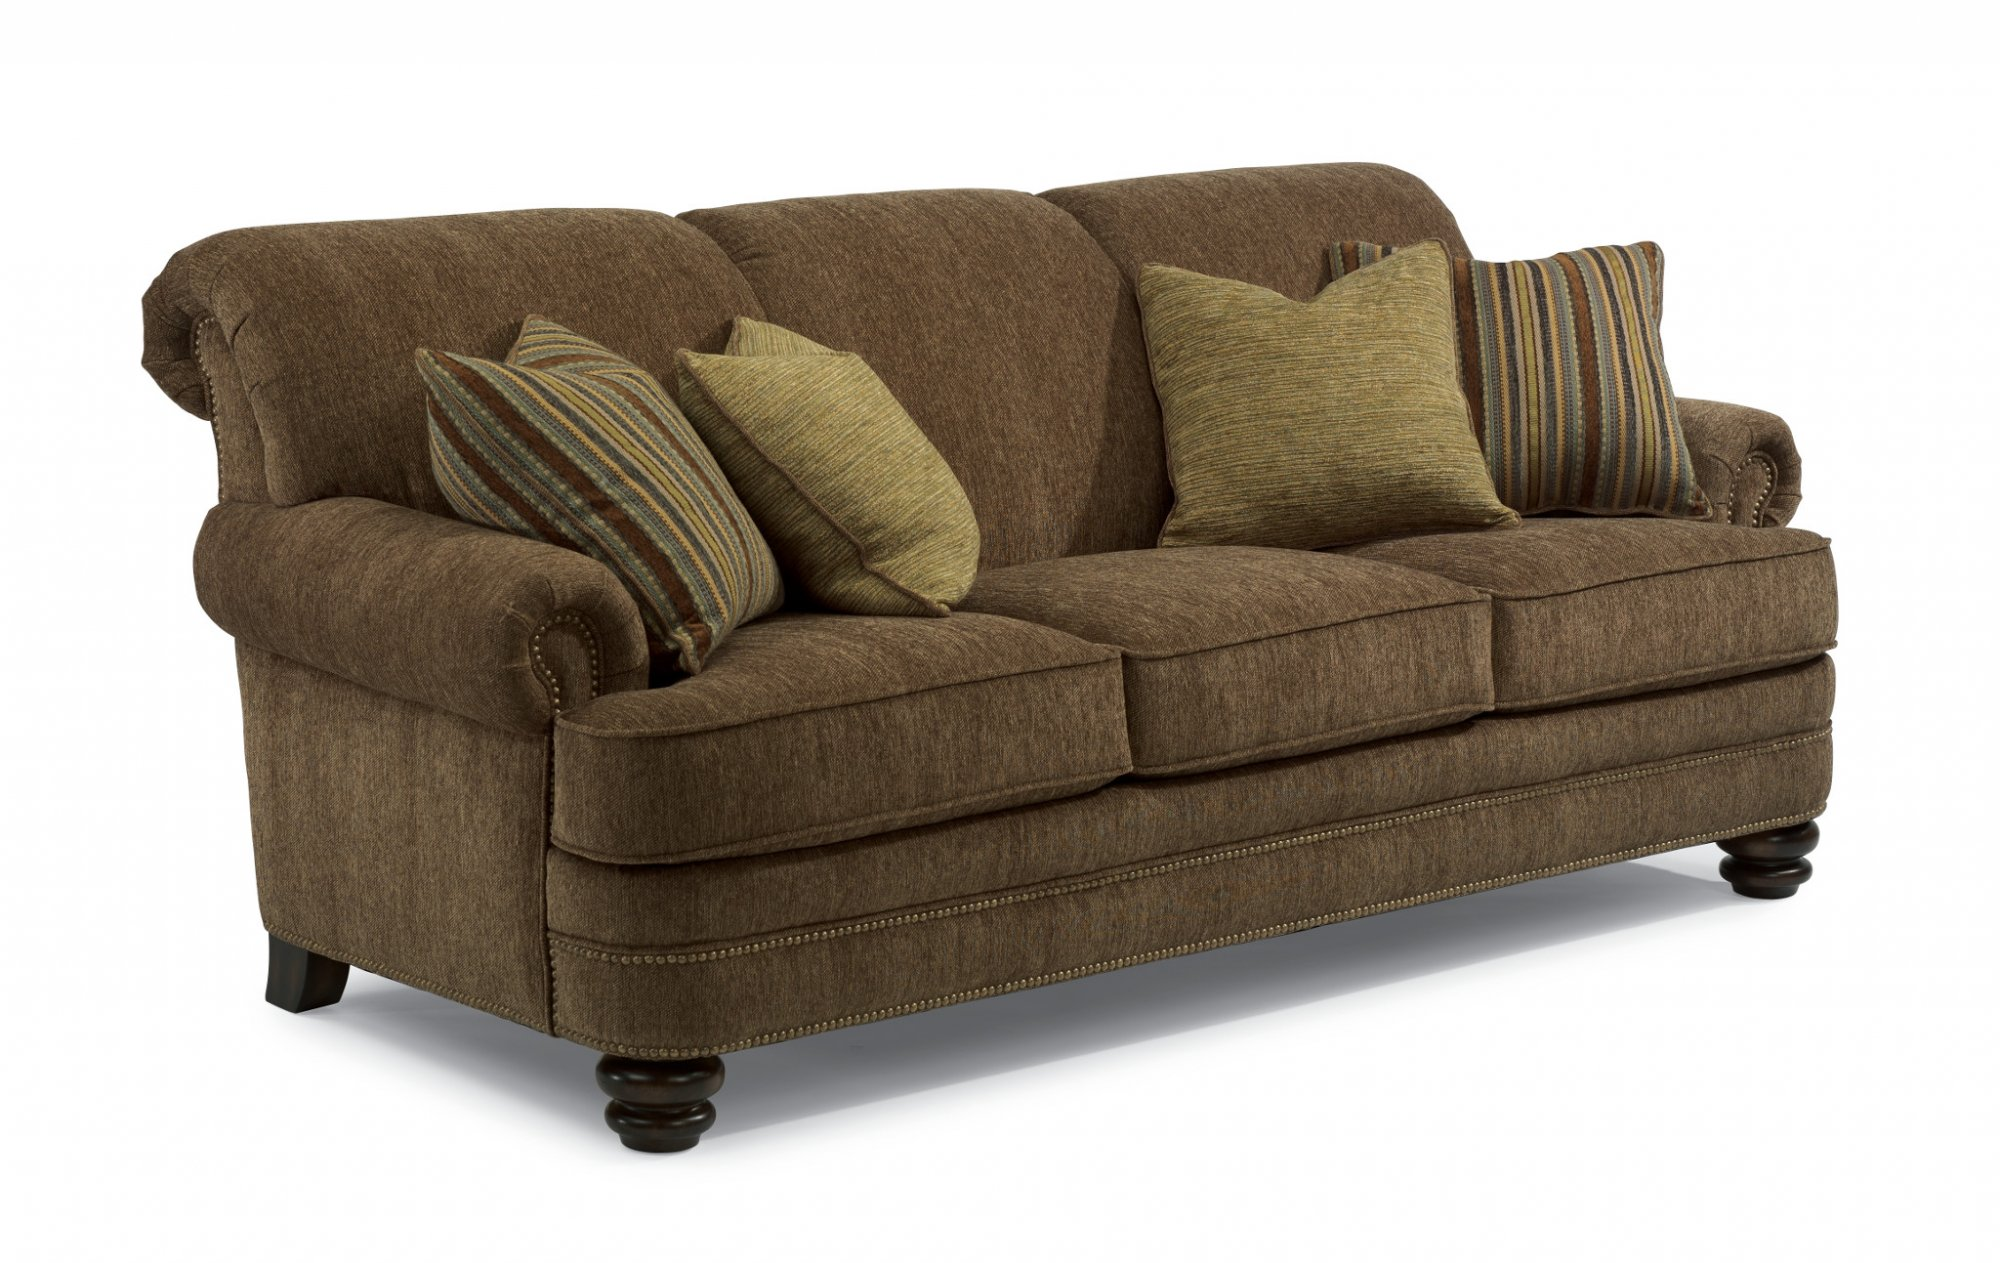 flexsteel sofas share via email download a high-resolution image HGUQDMD